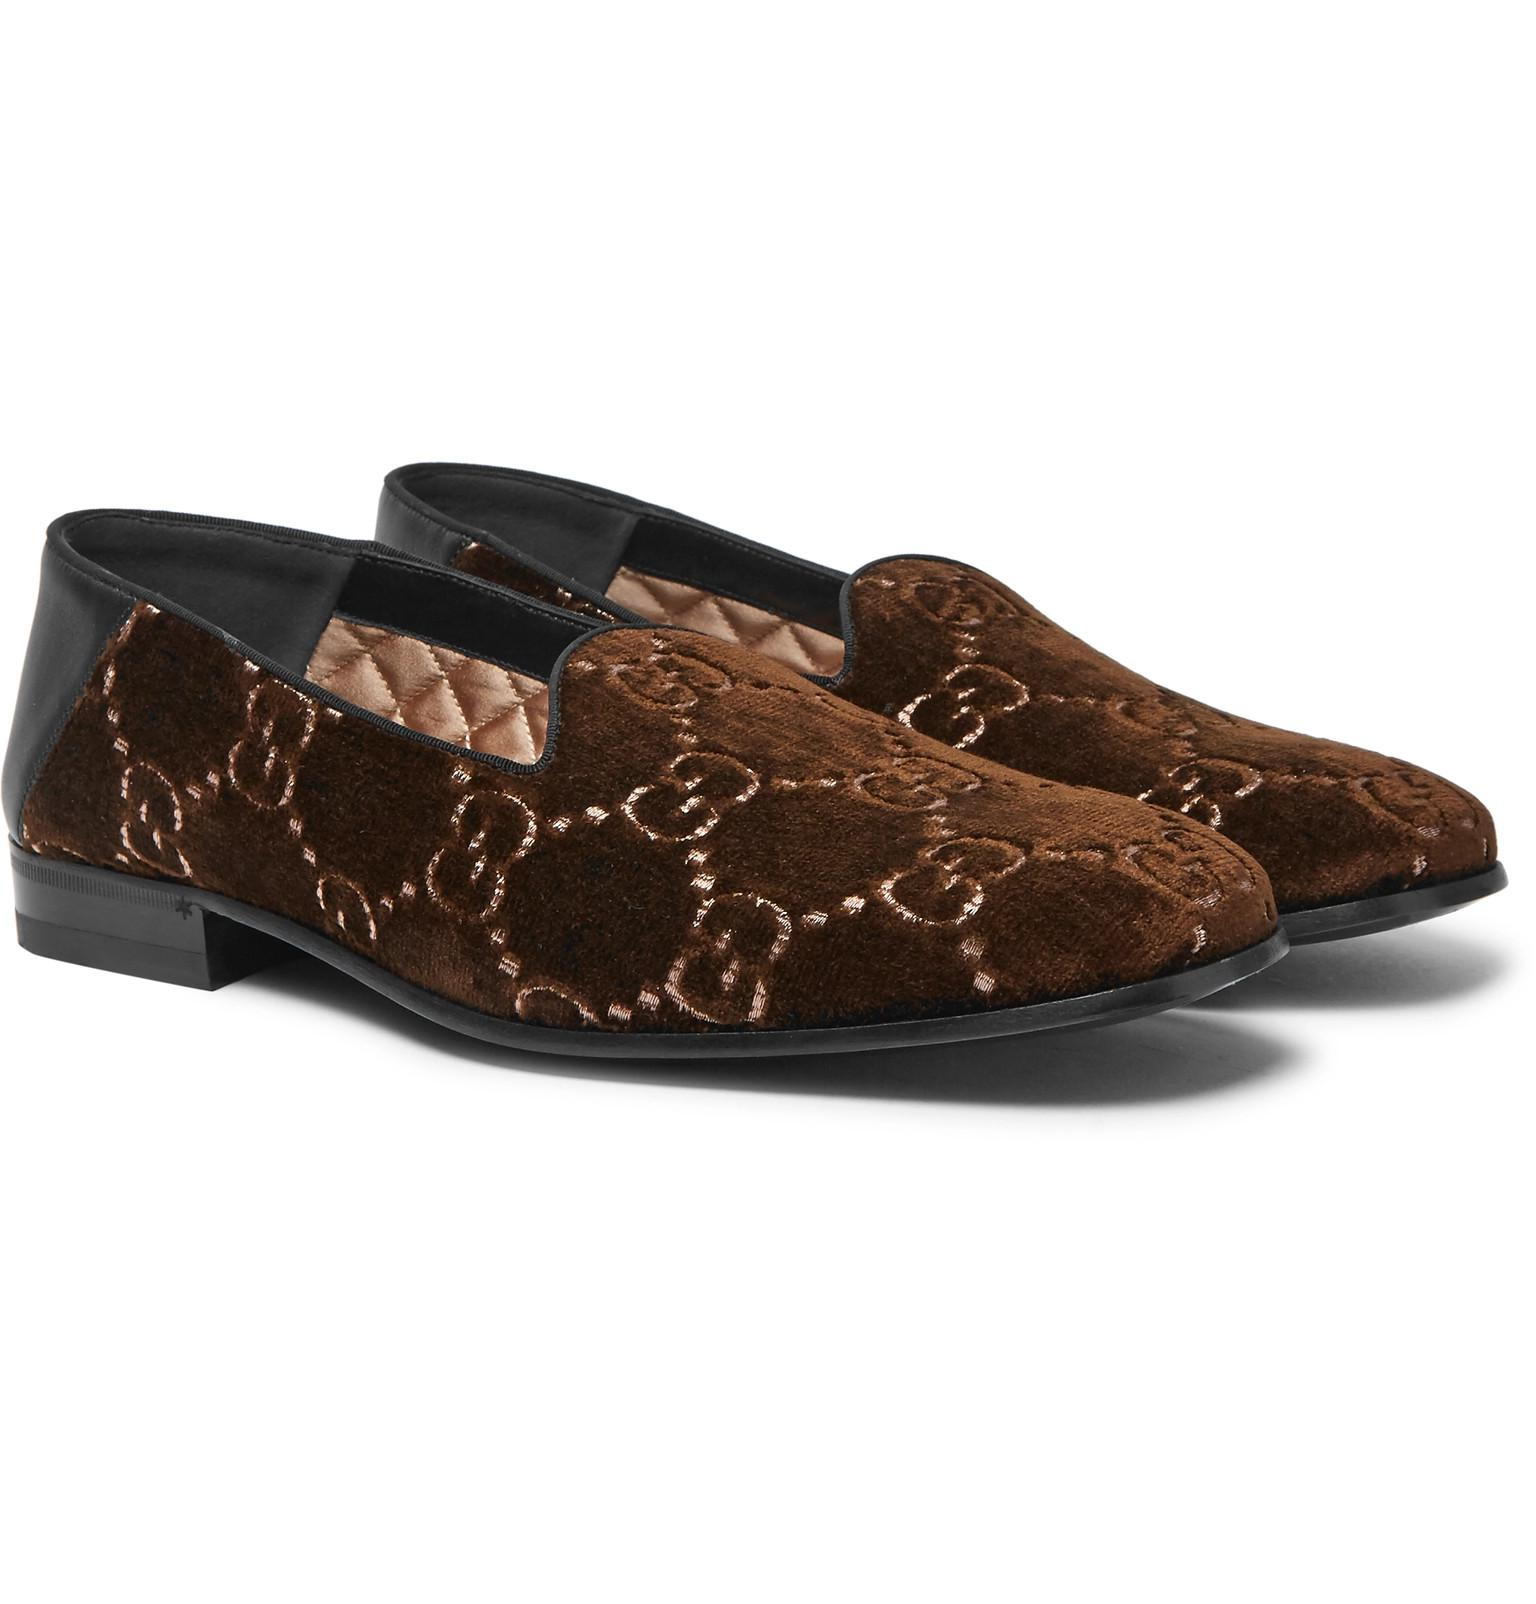 69d6ed630 Gucci. Men's Brown Gallipoli Collapsible-heel Leather-trimmed Embroidered  Velvet Loafers